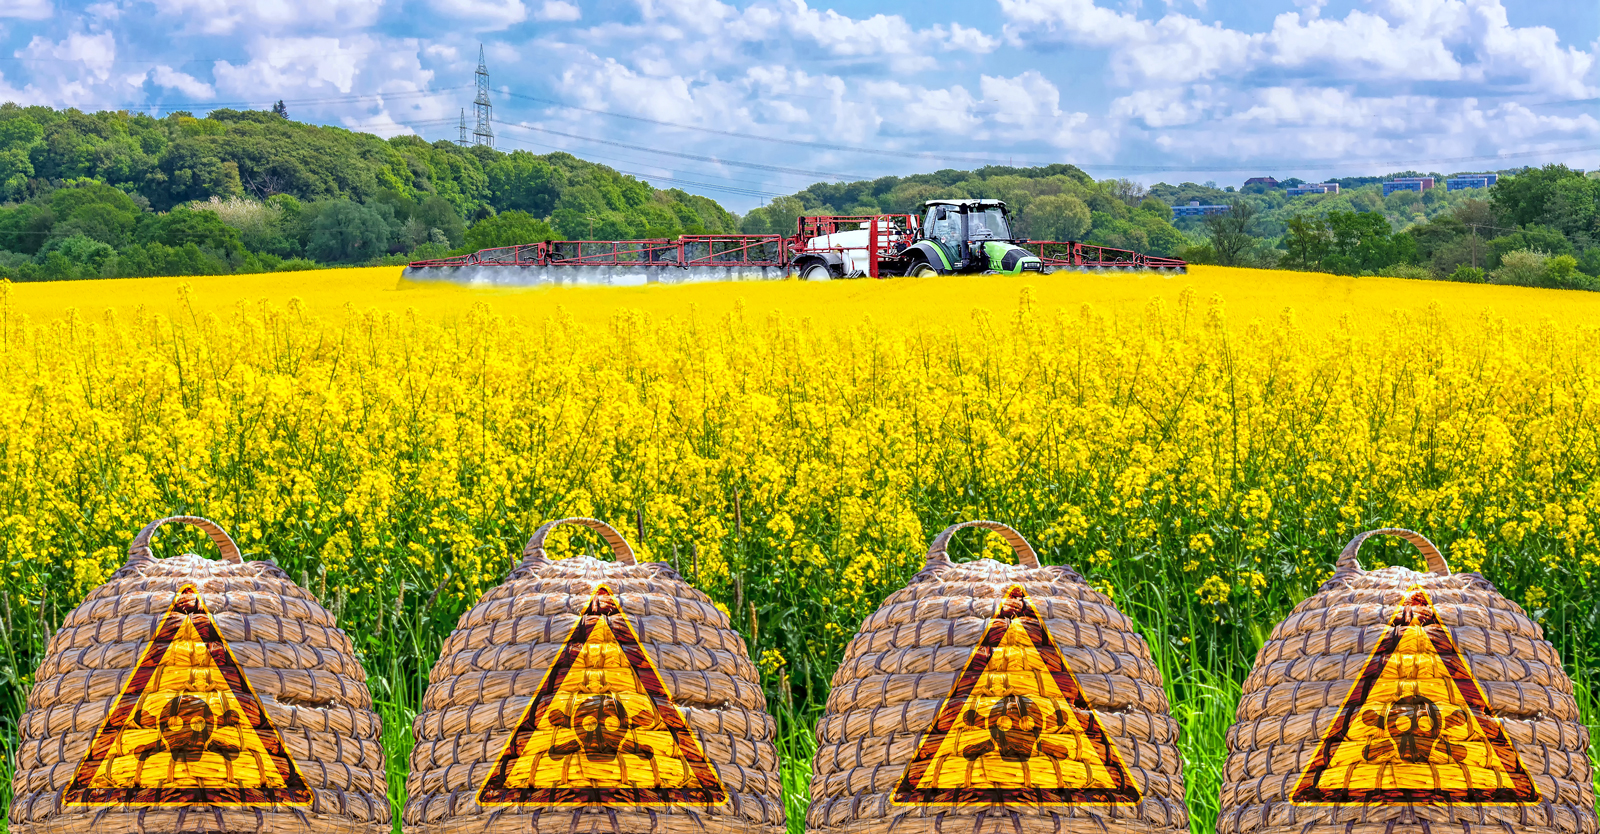 glyphosate-still-used-everywhere,-despite-evidence-it-causes-cancer,-other-illnesses